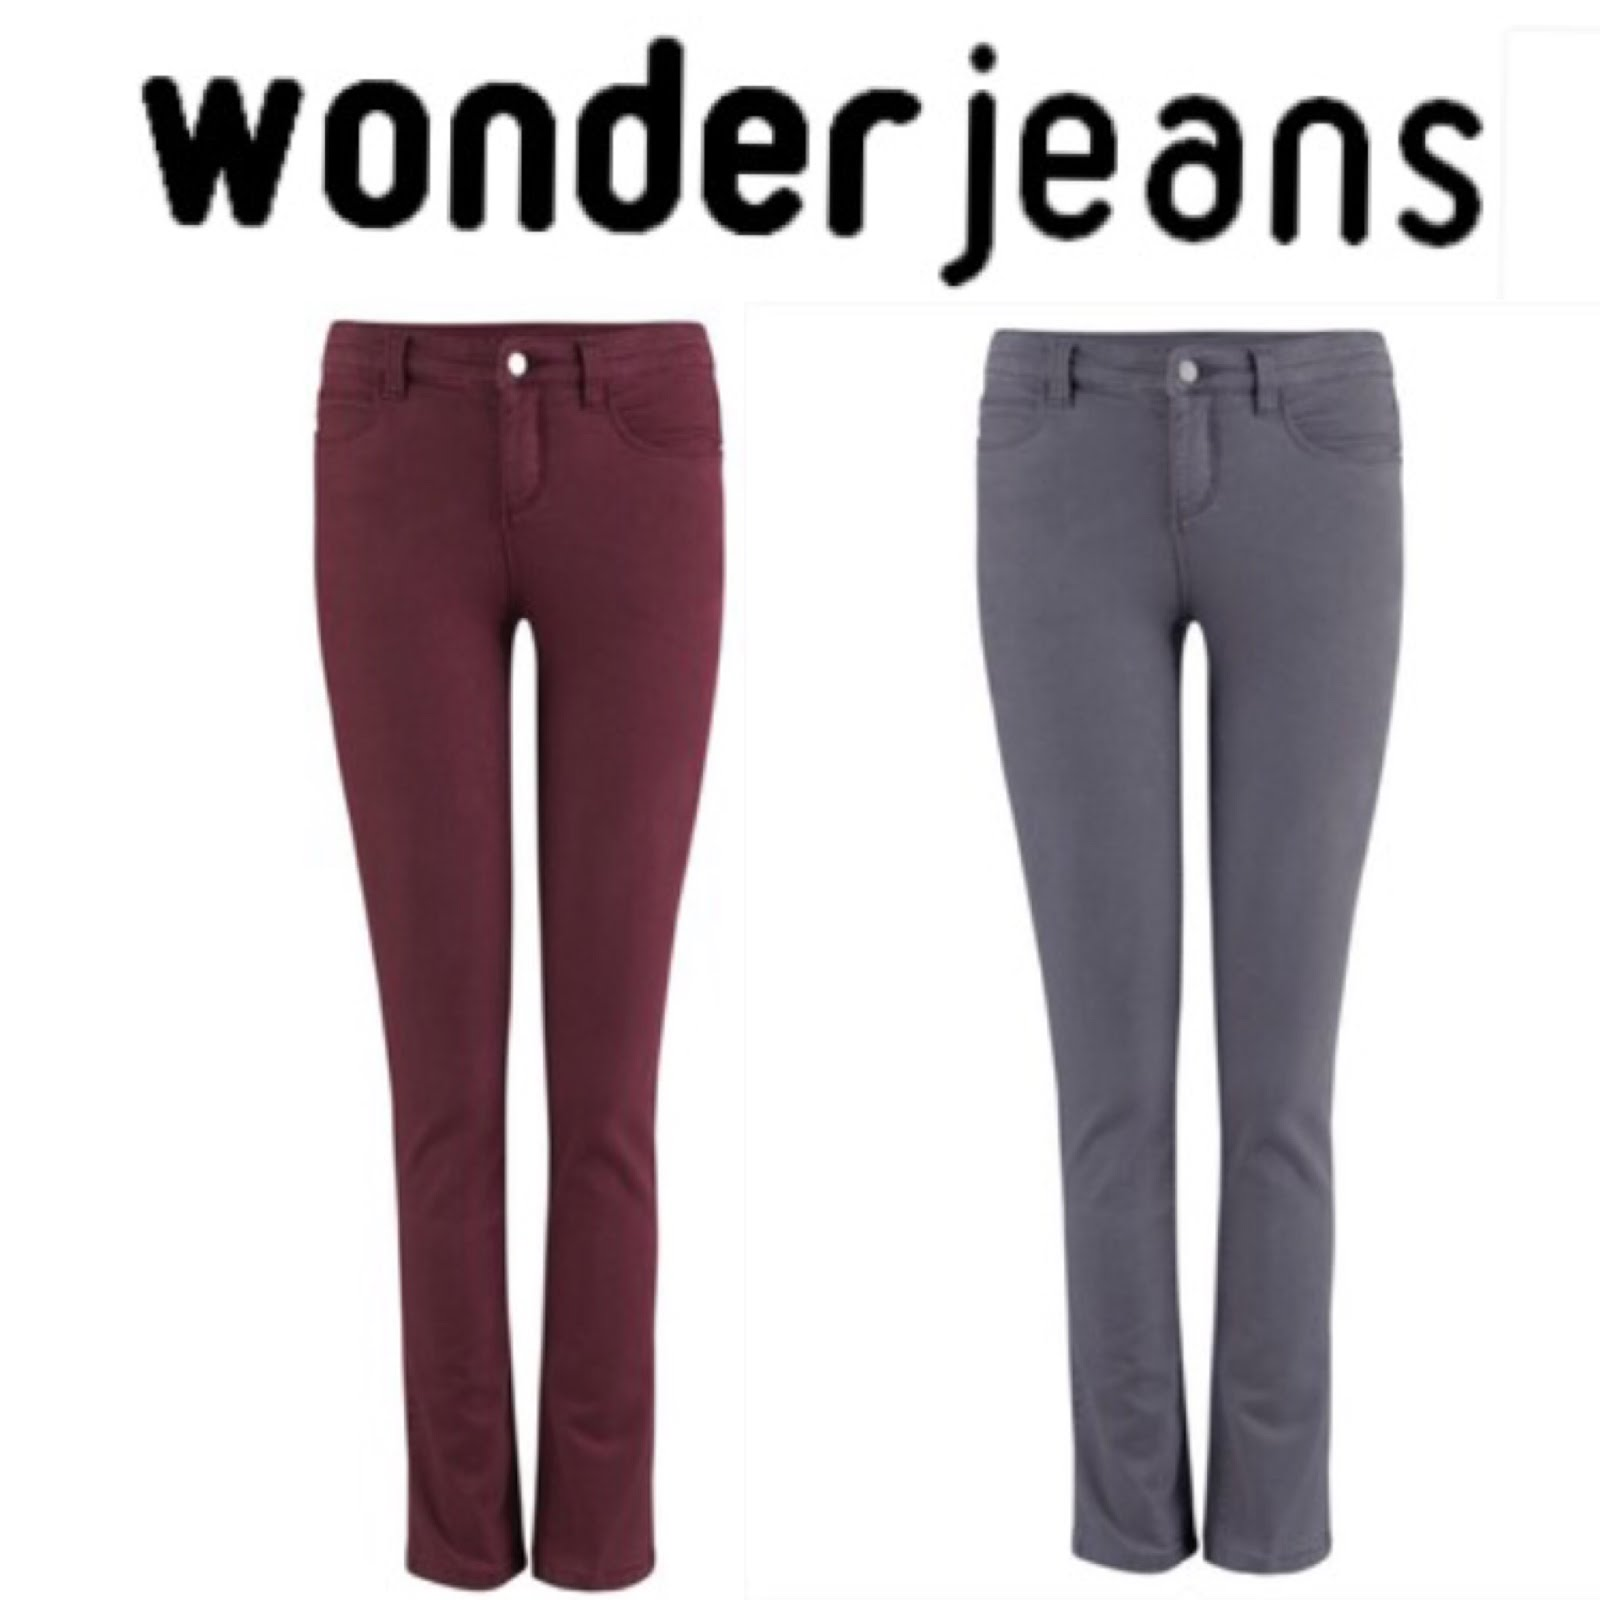 Wonderjeans - Jeans that fit